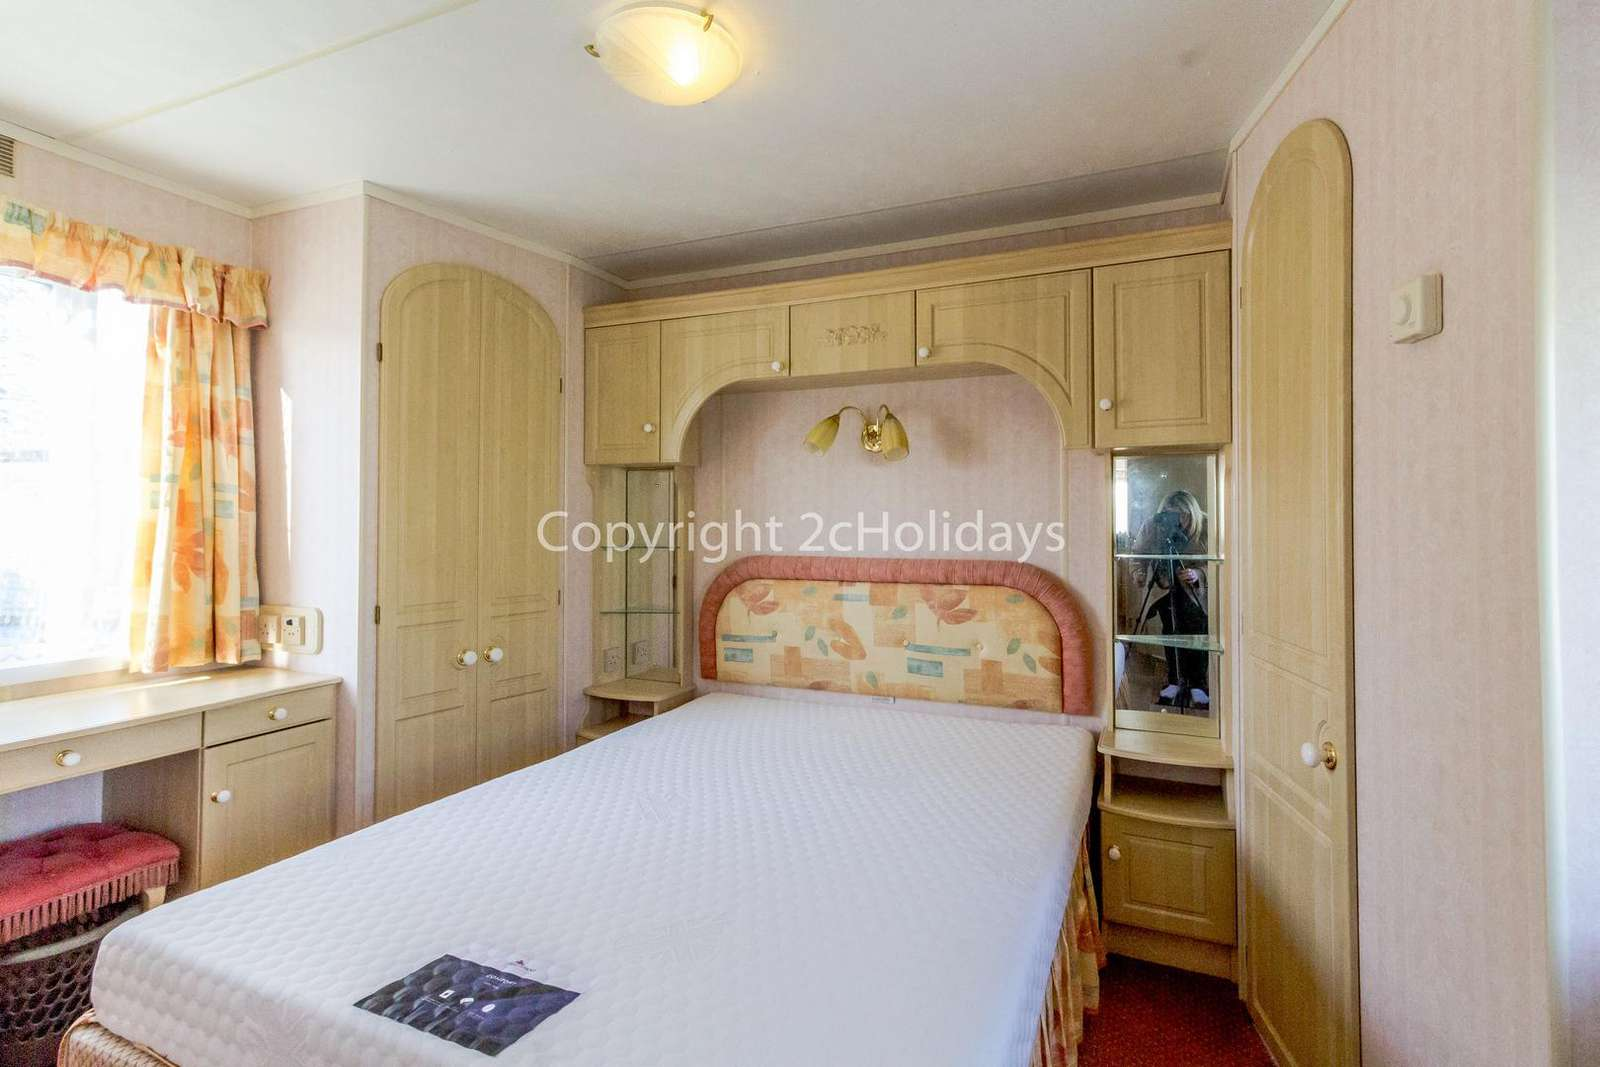 Lovely master bedroom with an en-suite!